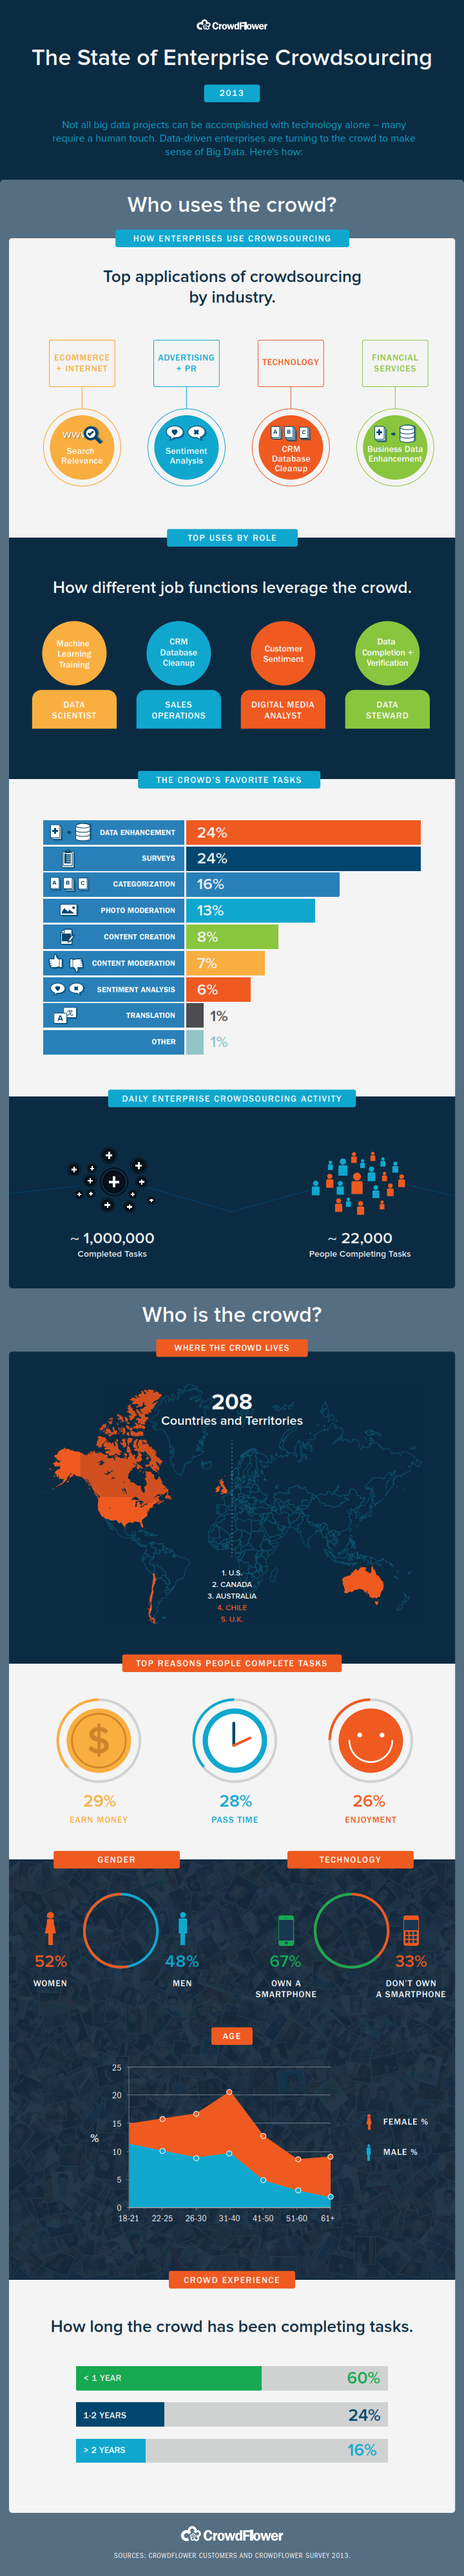 The State of Enterprise Crowdsourcing INFOGRAPHIC_001